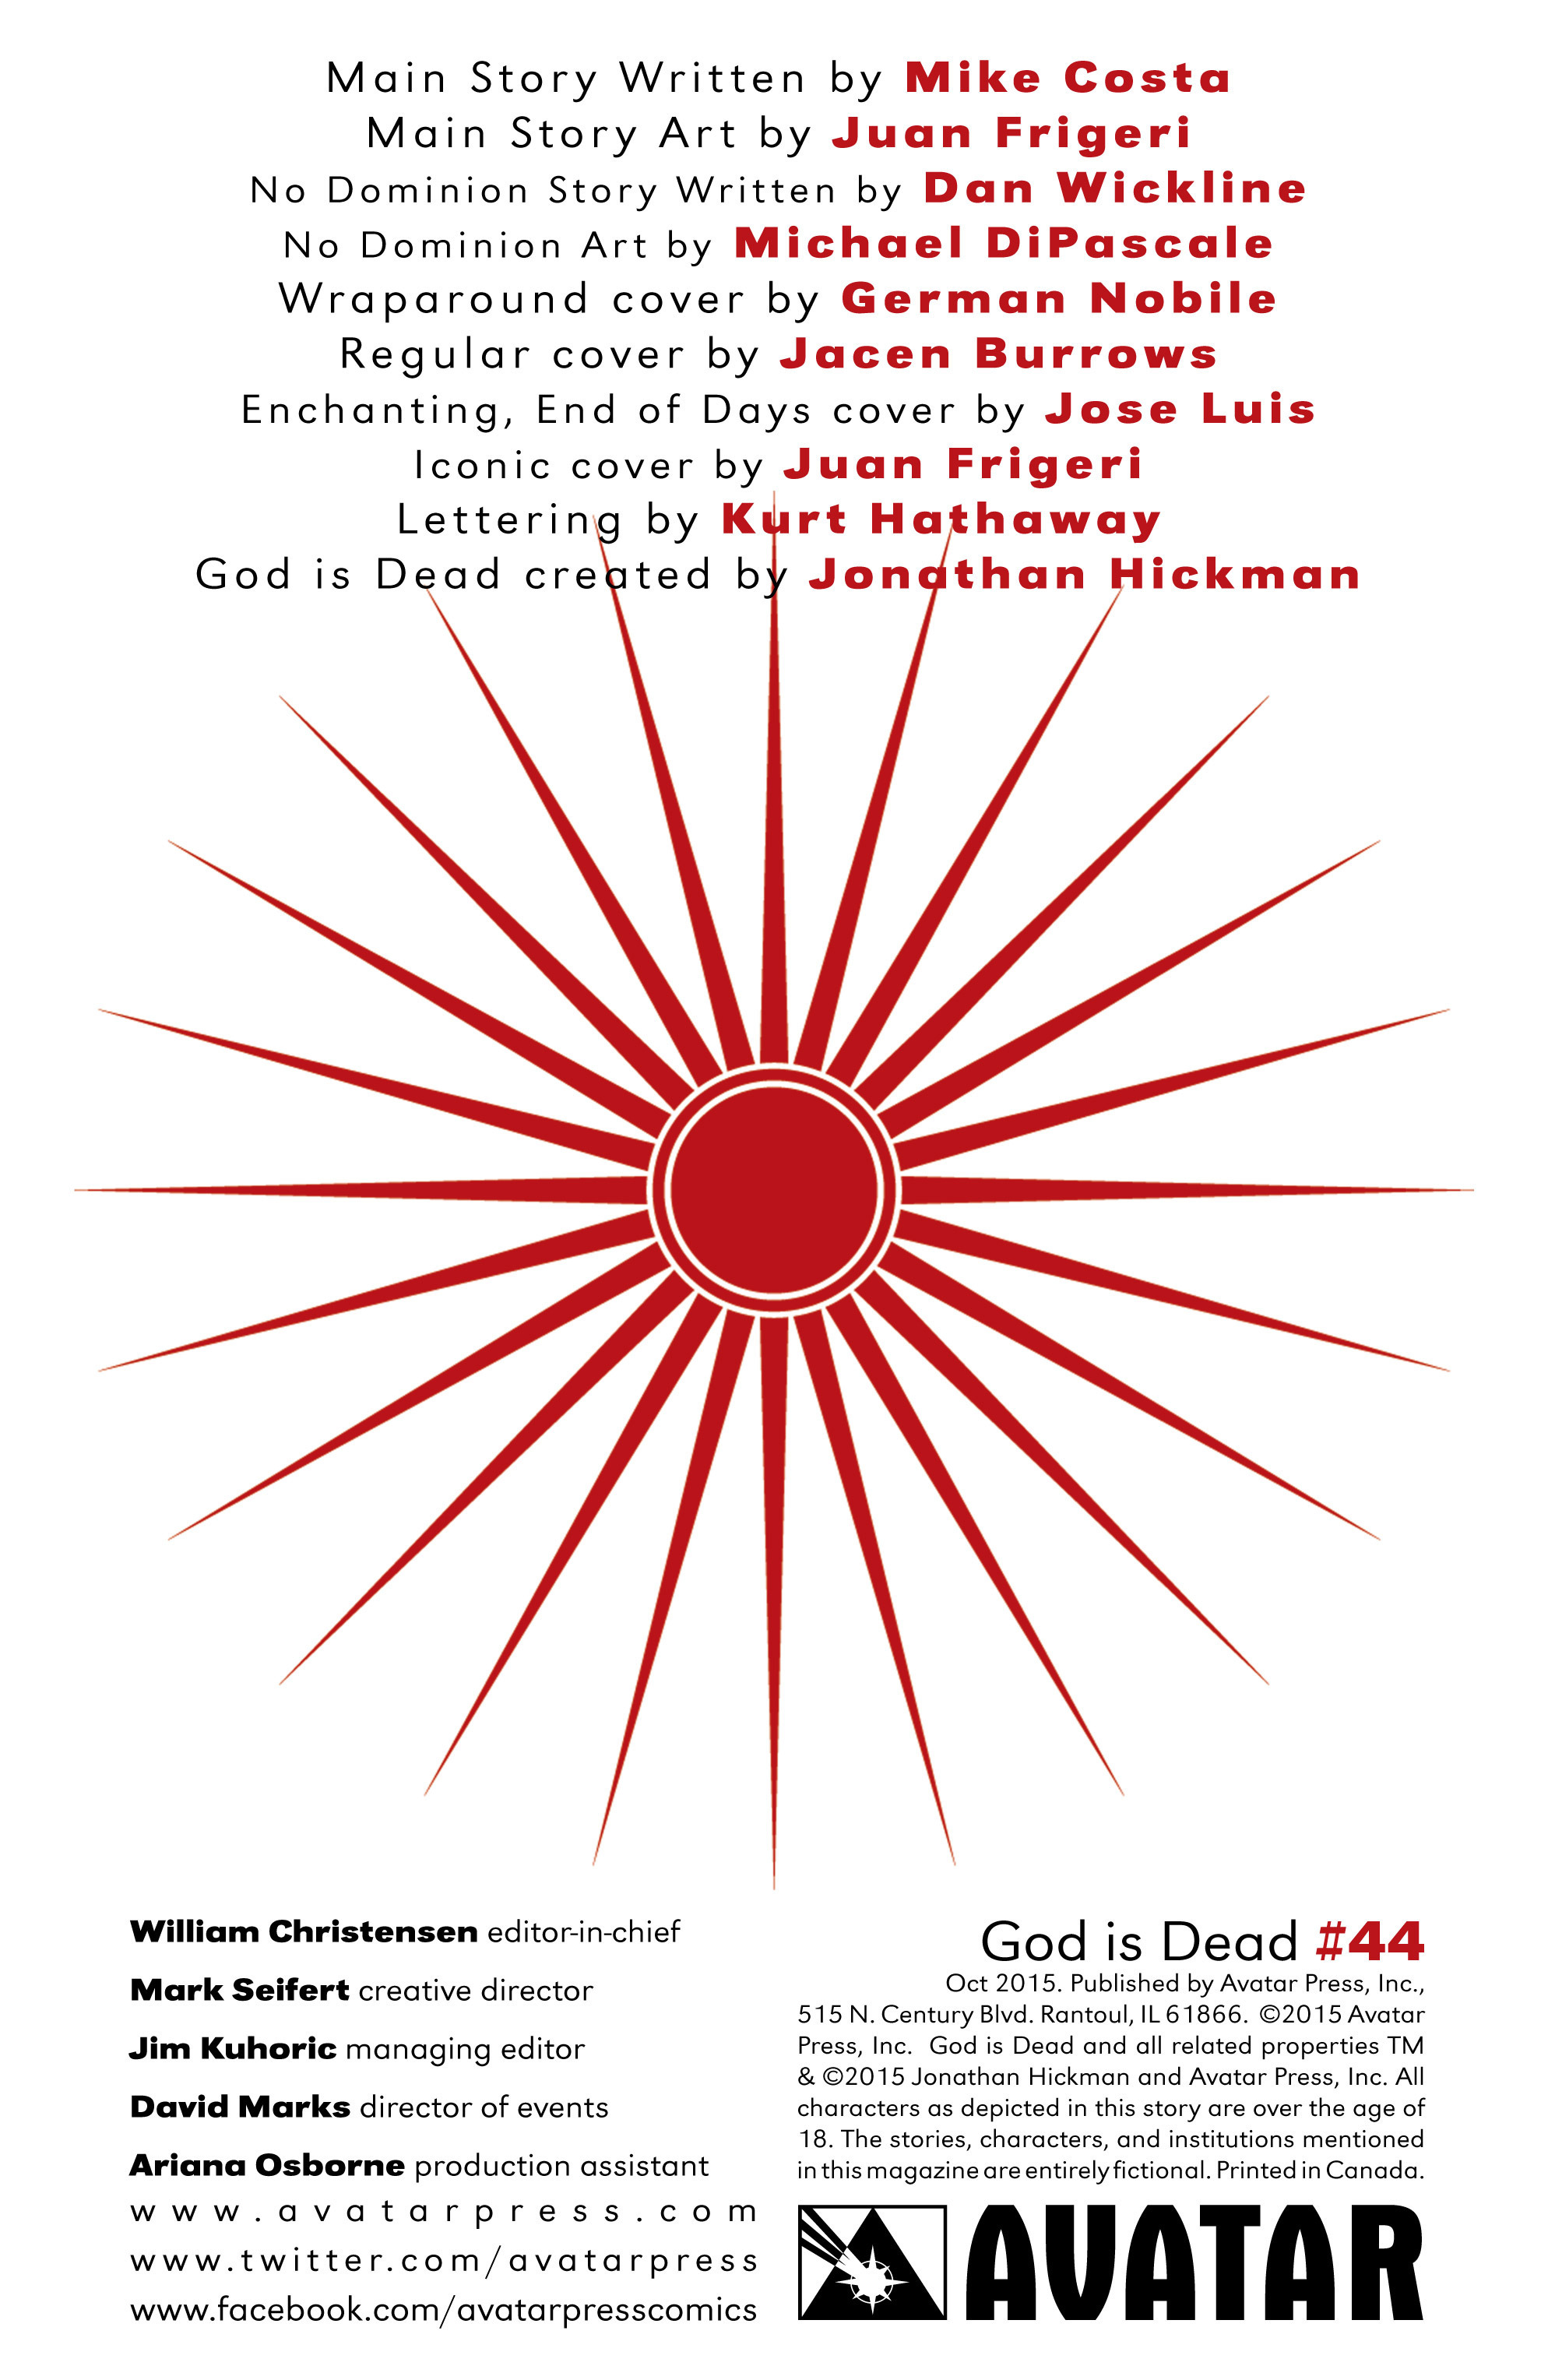 Read online God Is Dead comic -  Issue #44 - 2